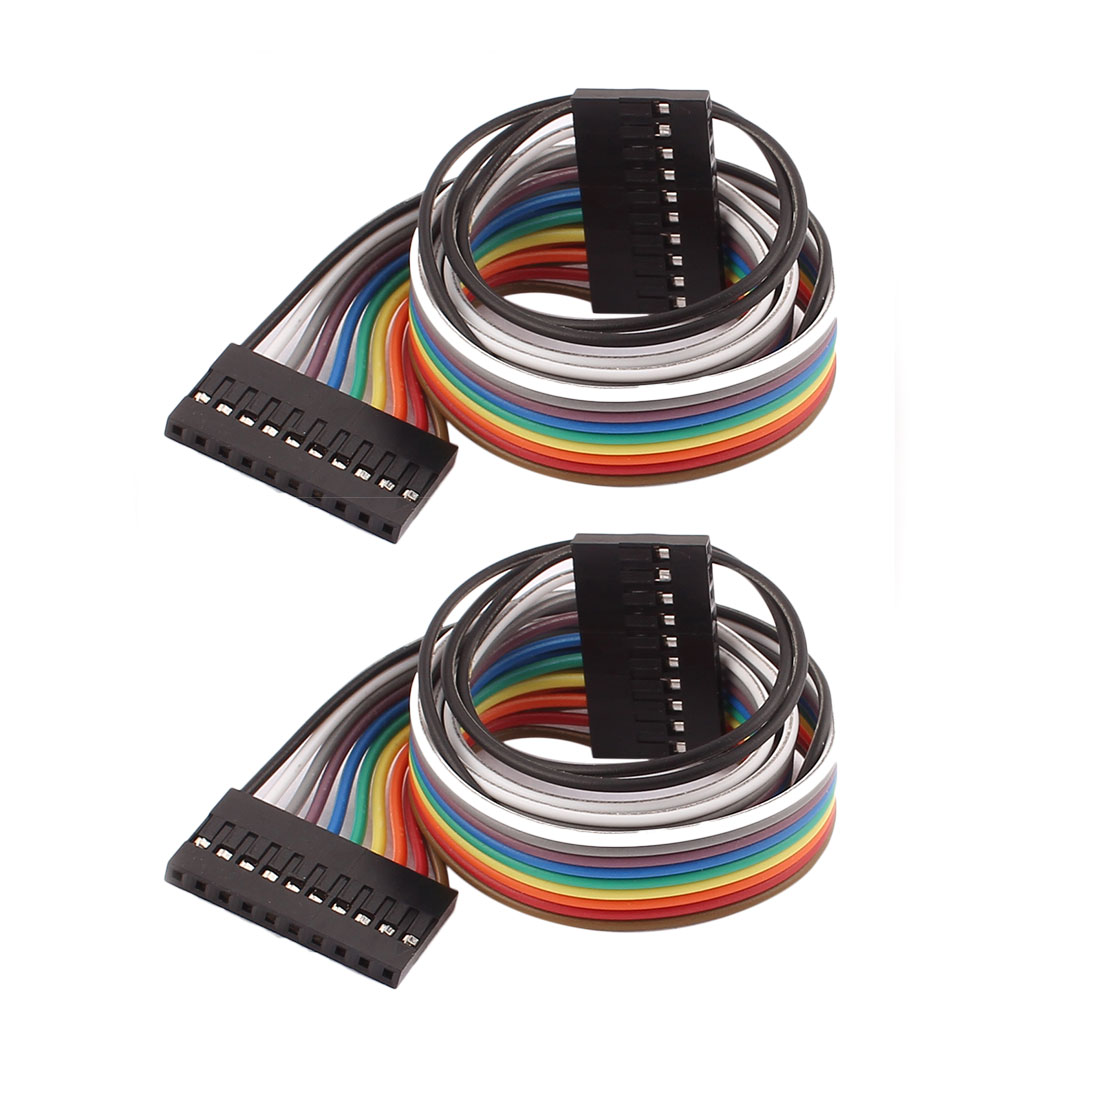 2 Pcs 10P Jumper Wires Female to Female Ribbon Cables Pi Pic Breadboard 40cm Long